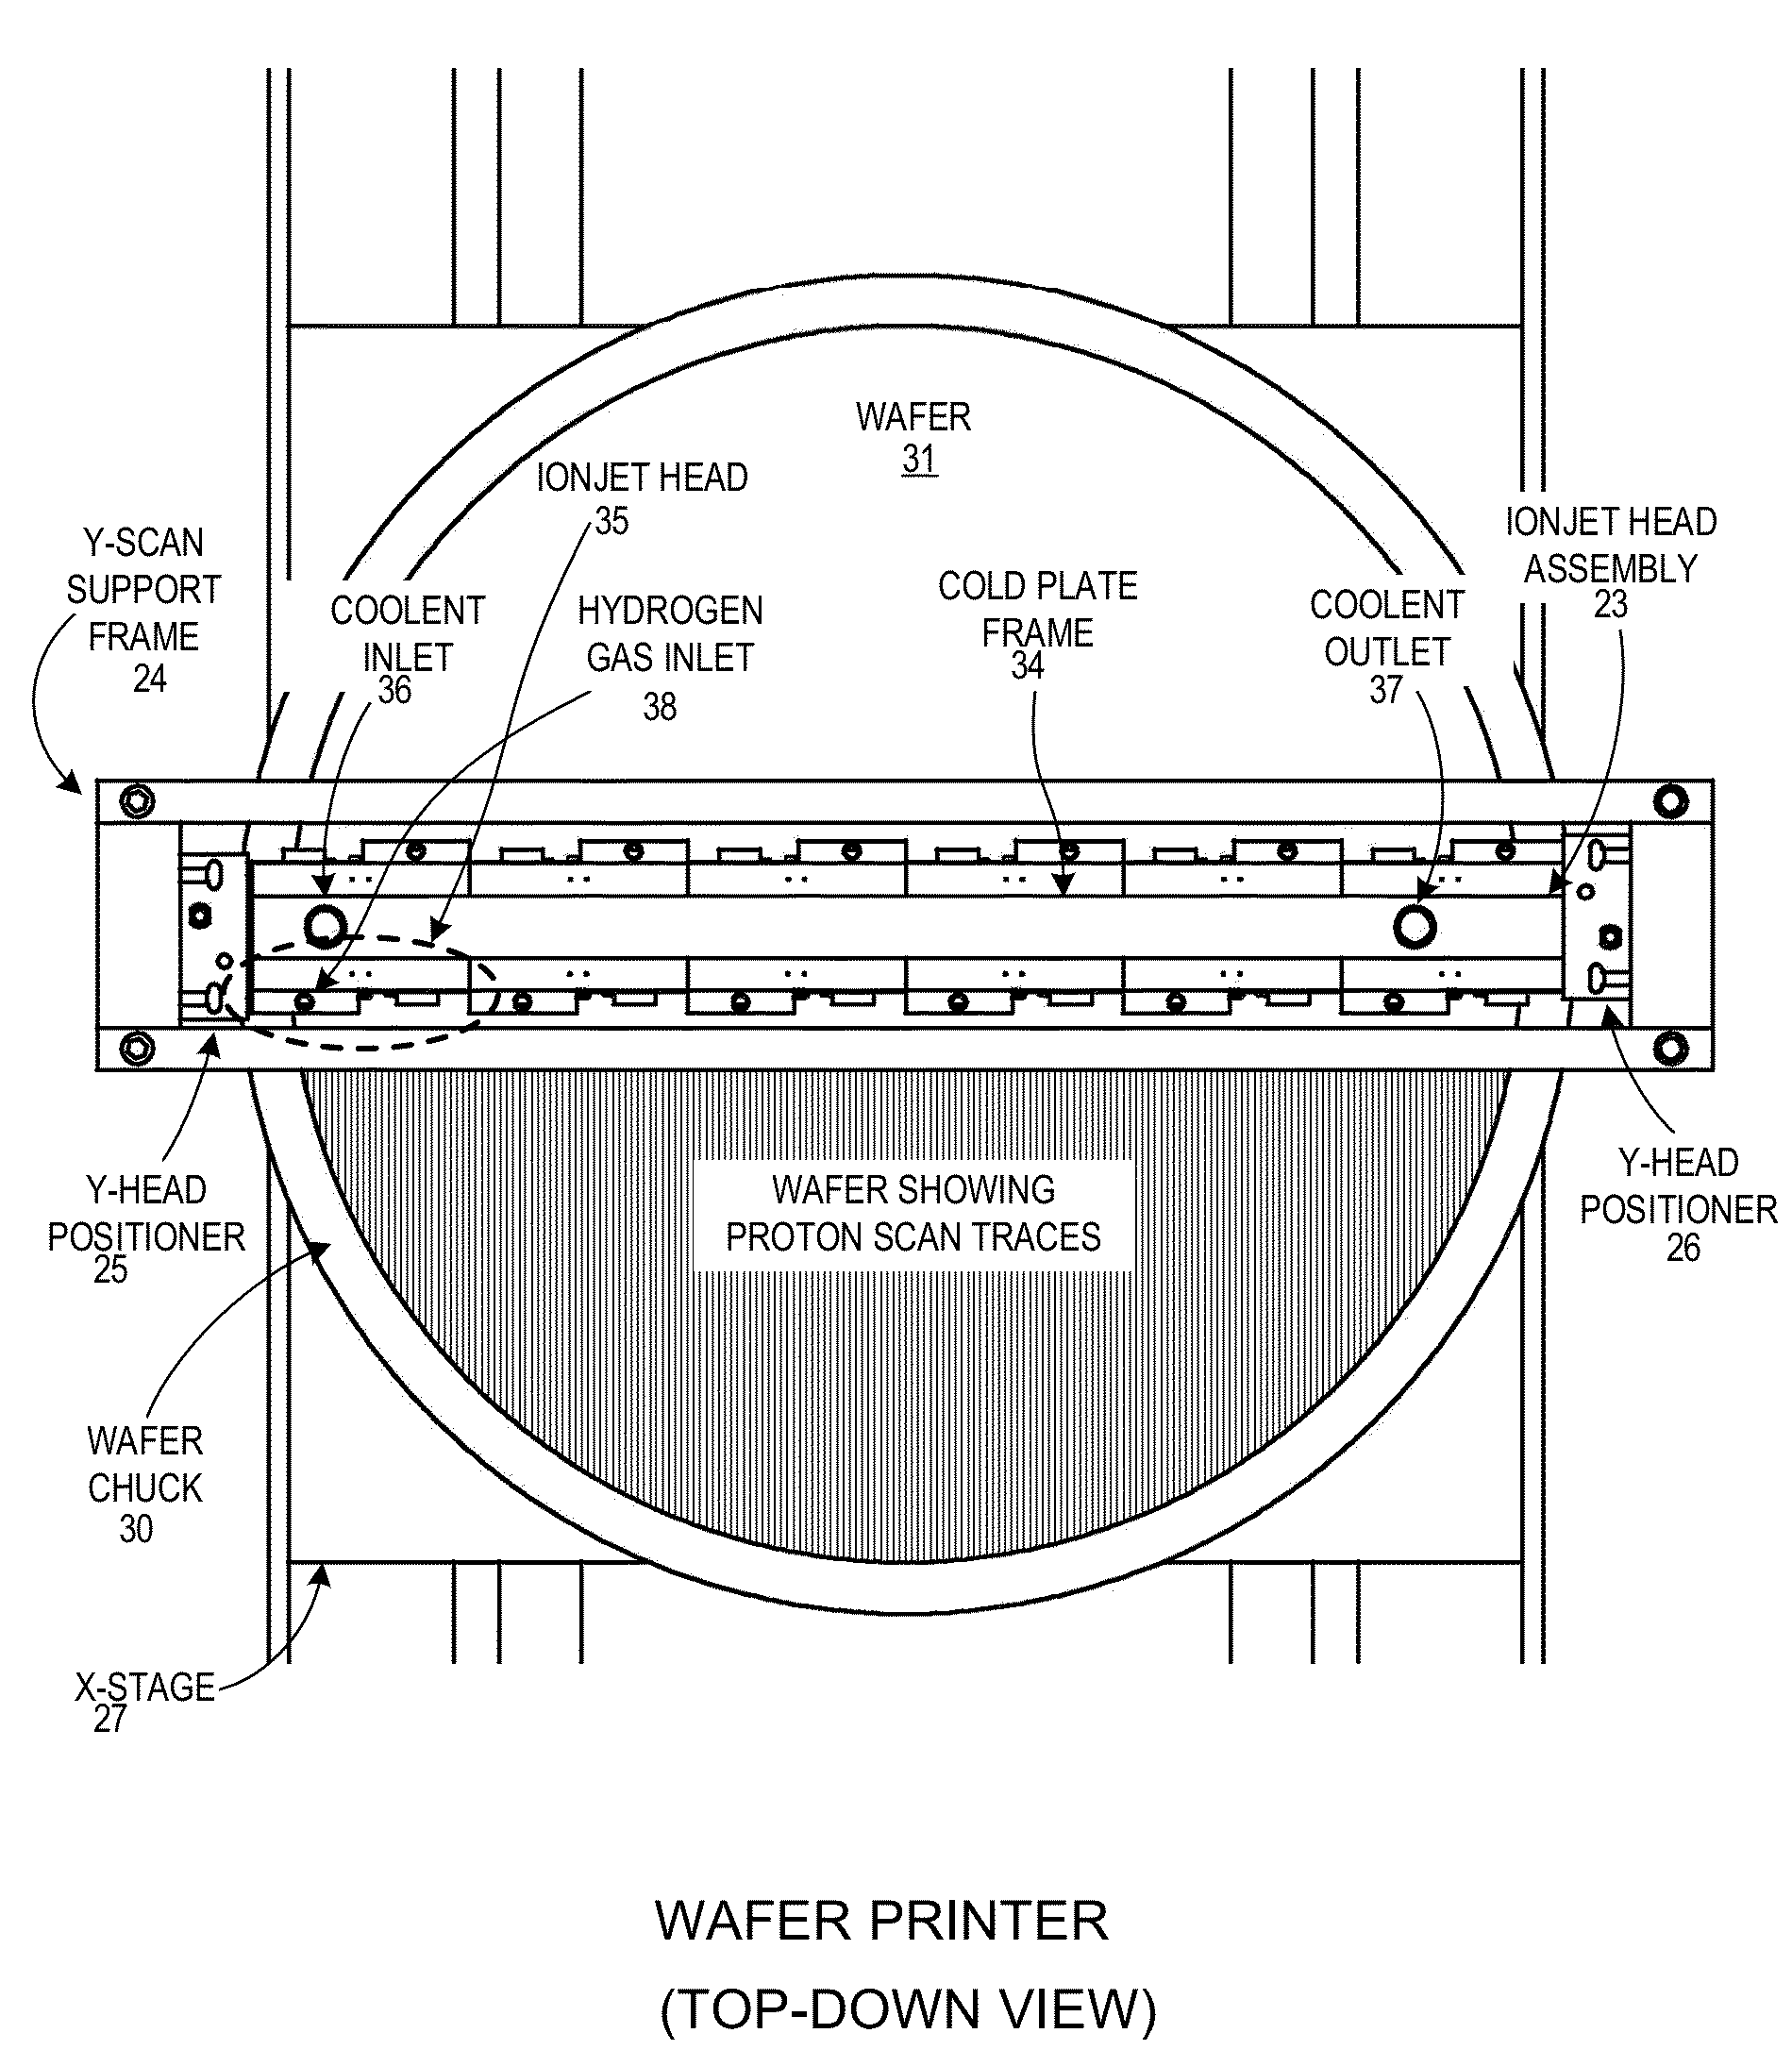 patent3.png